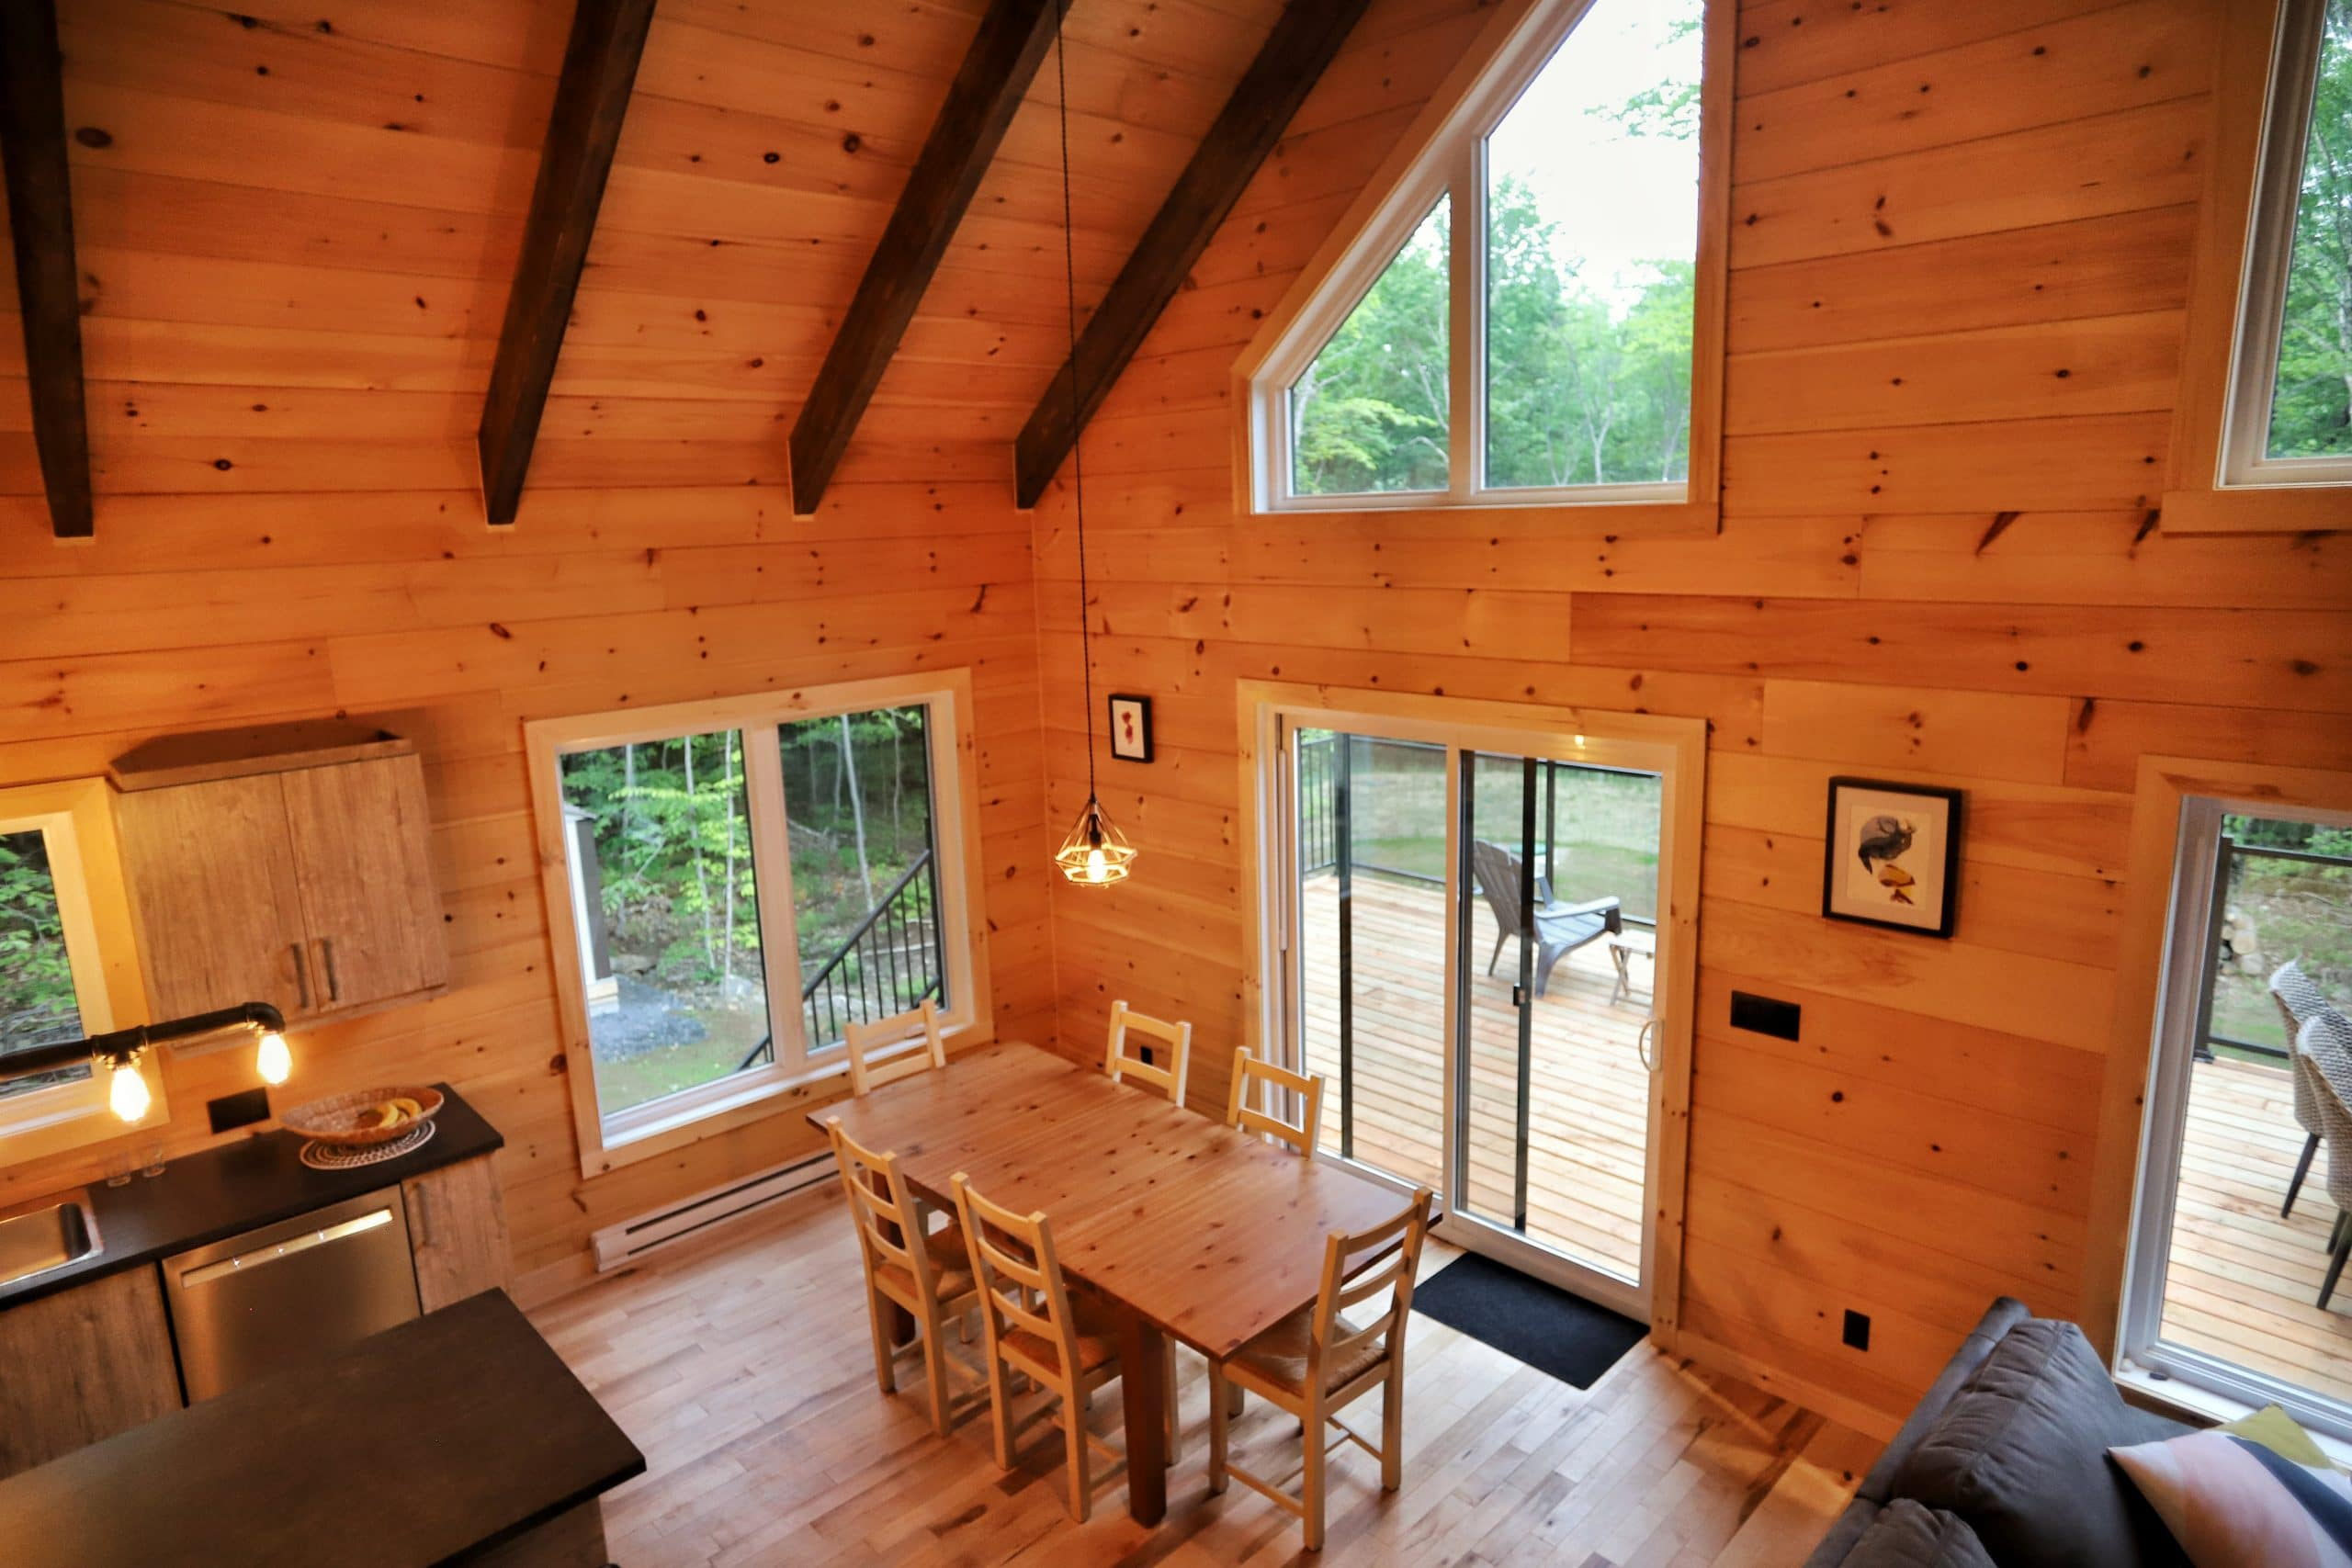 Photos of the chalet, number 30